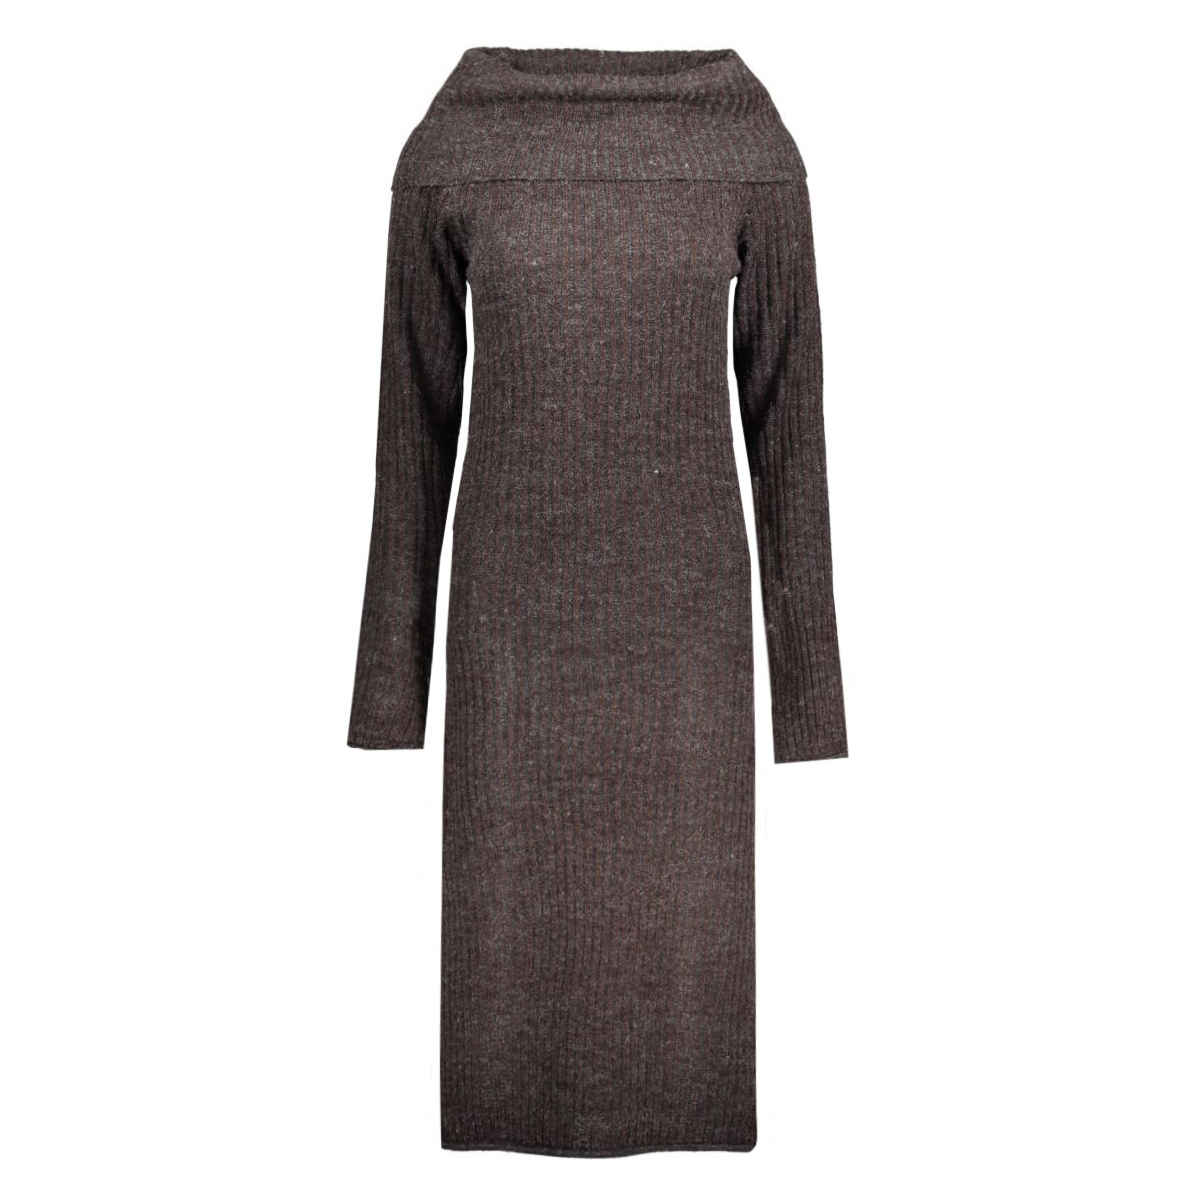 virib l/s knit dress 14036833 vila jurk plum/chocolate